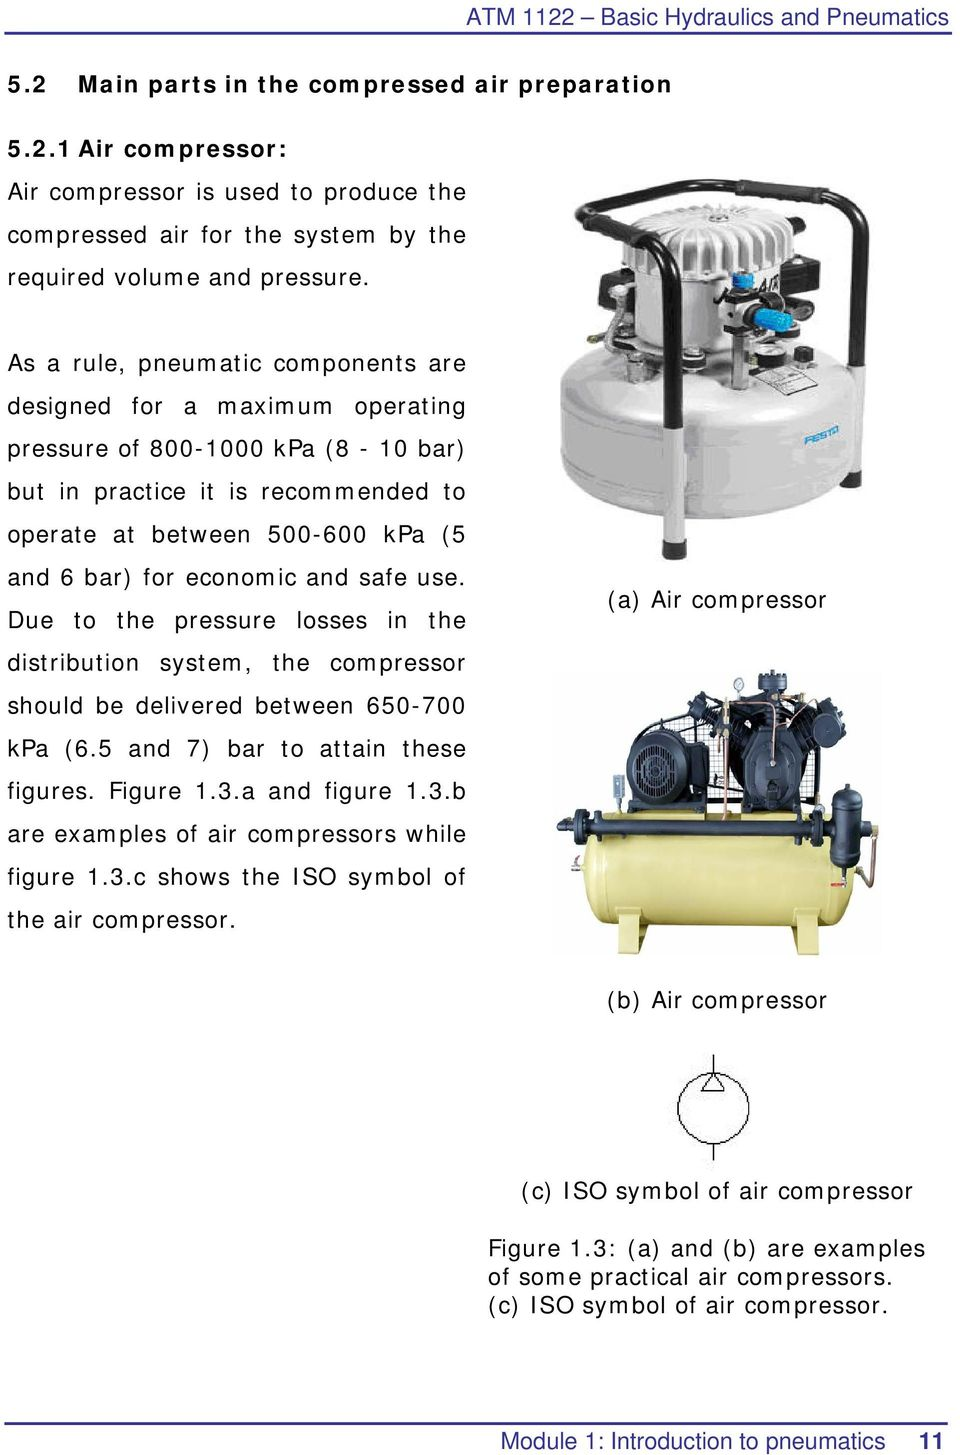 and safe use. Due to the pressure losses in the distribution system, the compressor should be delivered between 650-700 kpa (6.5 and 7) bar to attain these figures. Figure 1.3.